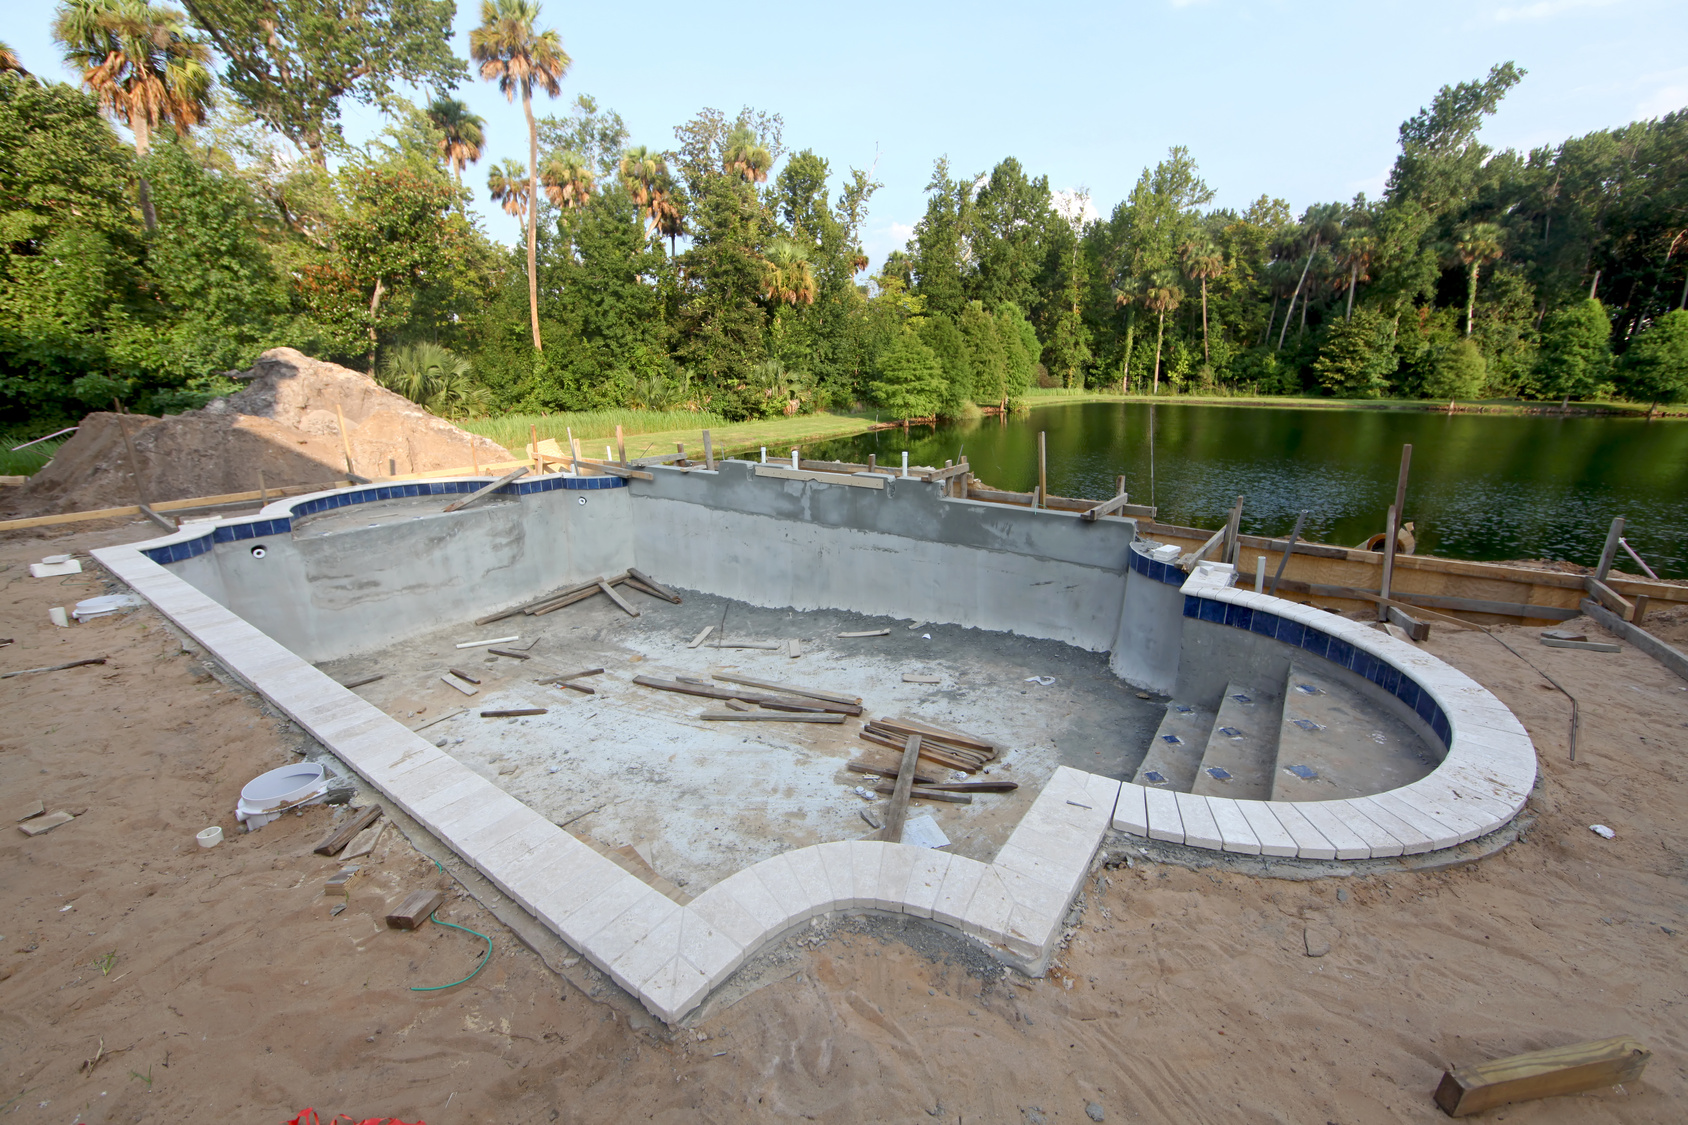 Construction Piscine Béton. Chantier De Construction Du0027une Piscine Maçonnée Inspirations De Conception